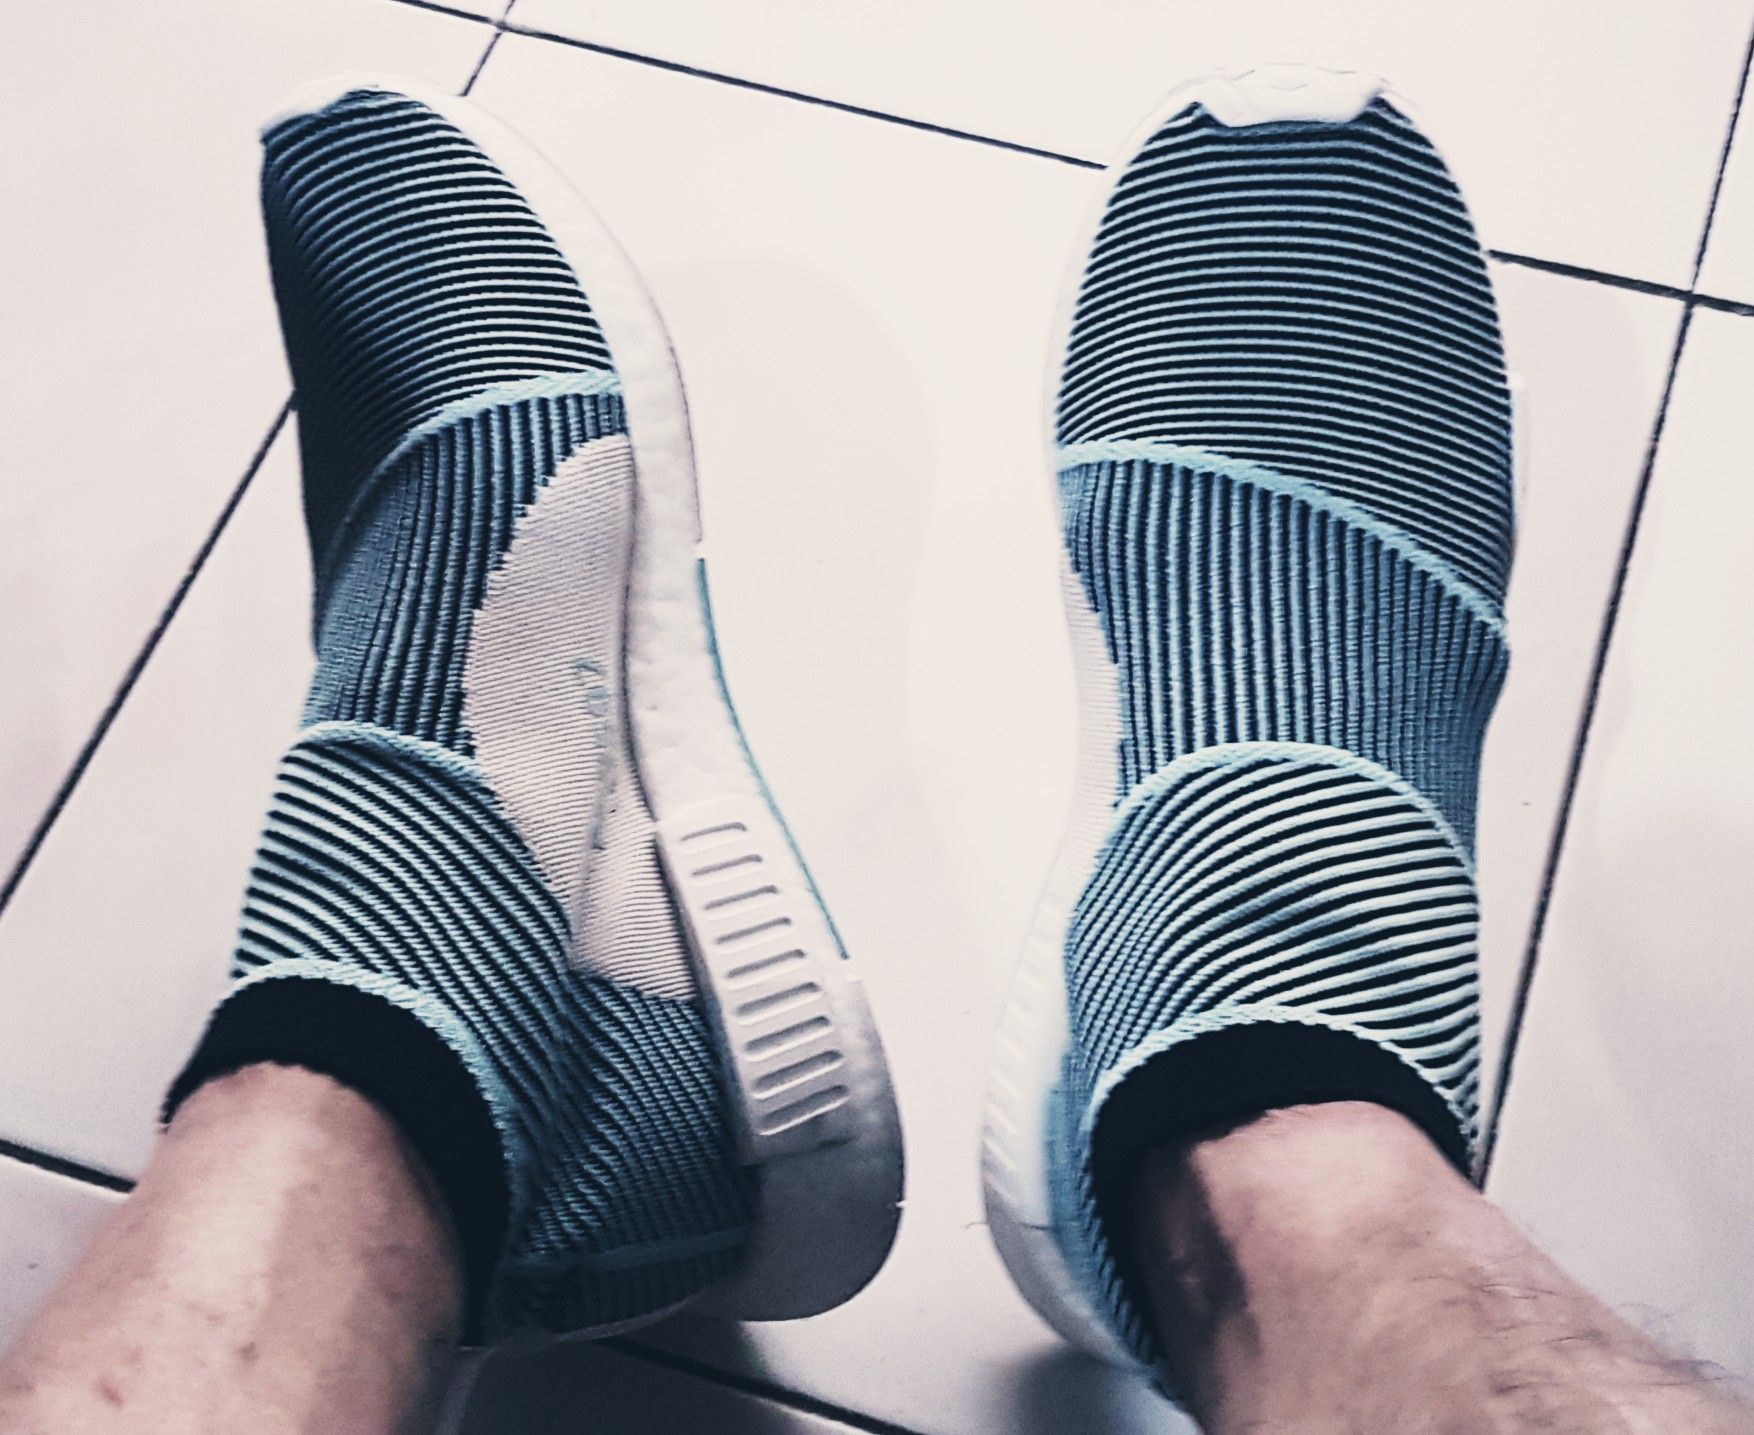 new arrival d4397 688fa My Adidas City Sock Parley | Zainal's Picture of Knitting ...